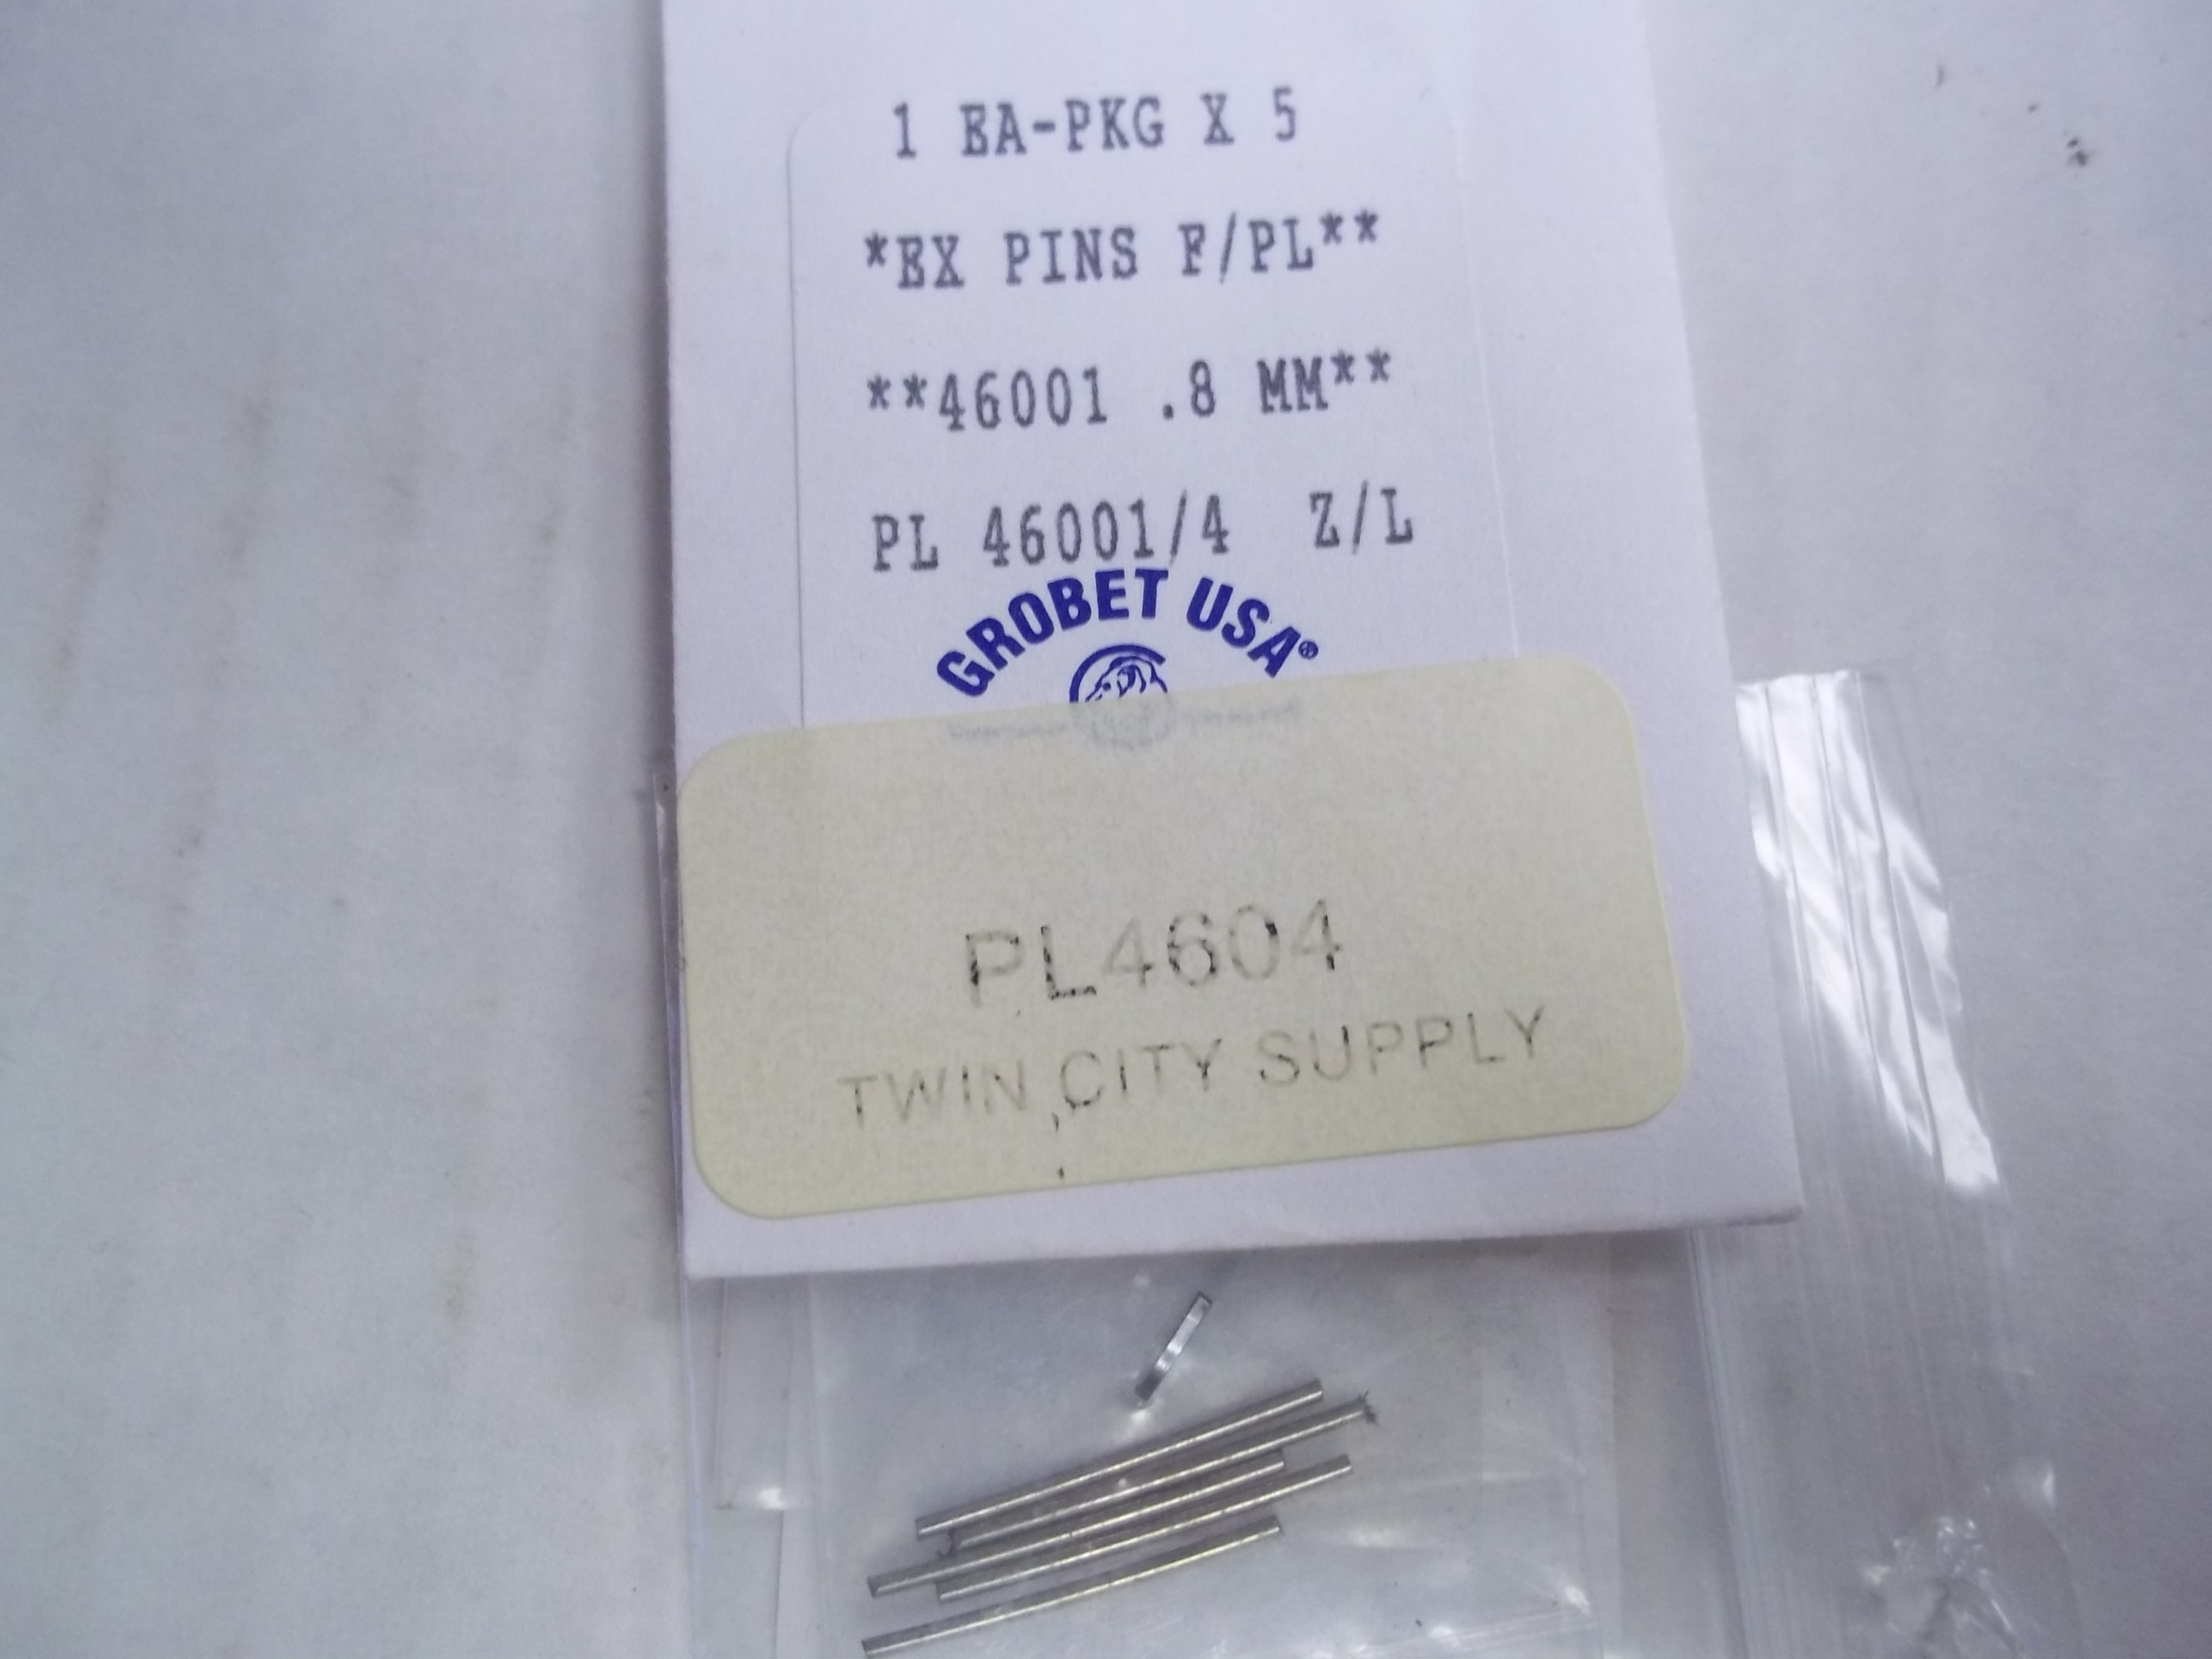 PL4604 Replacement Pins for the PL4605 Pin Punch--for the PL4600 Bracelet Sizing Pliers